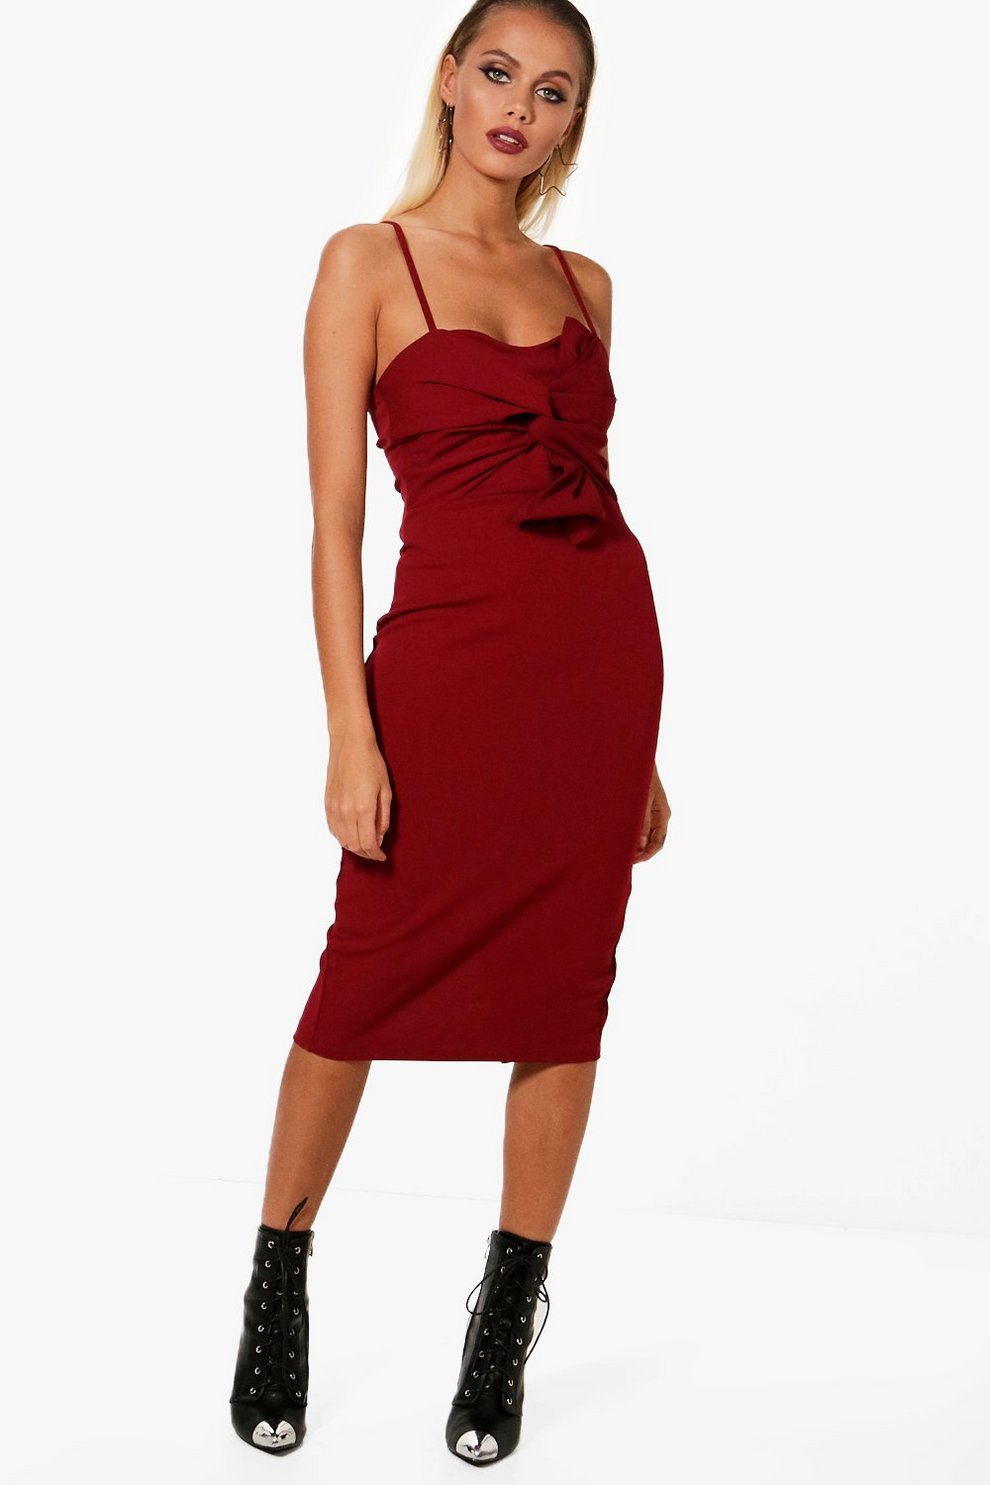 2018 Unisex For Sale Cheap With Credit Card Boohoo Natalia Strappy Bow Front Midi Dress Clearance Finishline pBWH3uh18